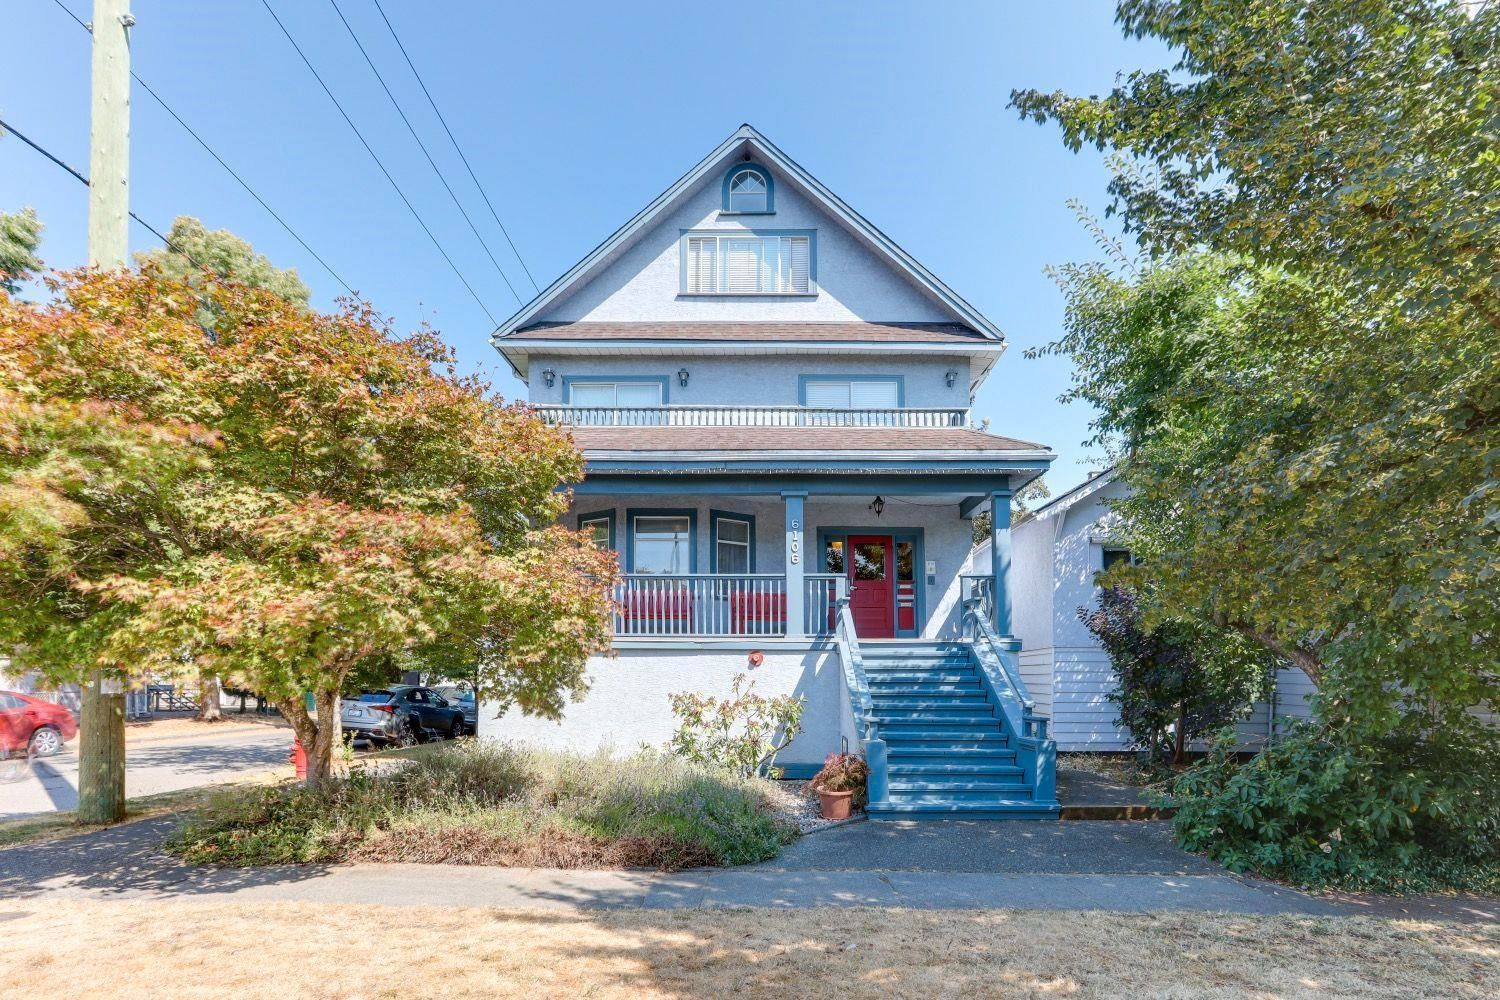 Main Photo: 6106 CHESTER Street in Vancouver: South Vancouver Multi-Family Commercial for sale (Vancouver East)  : MLS®# C8040044